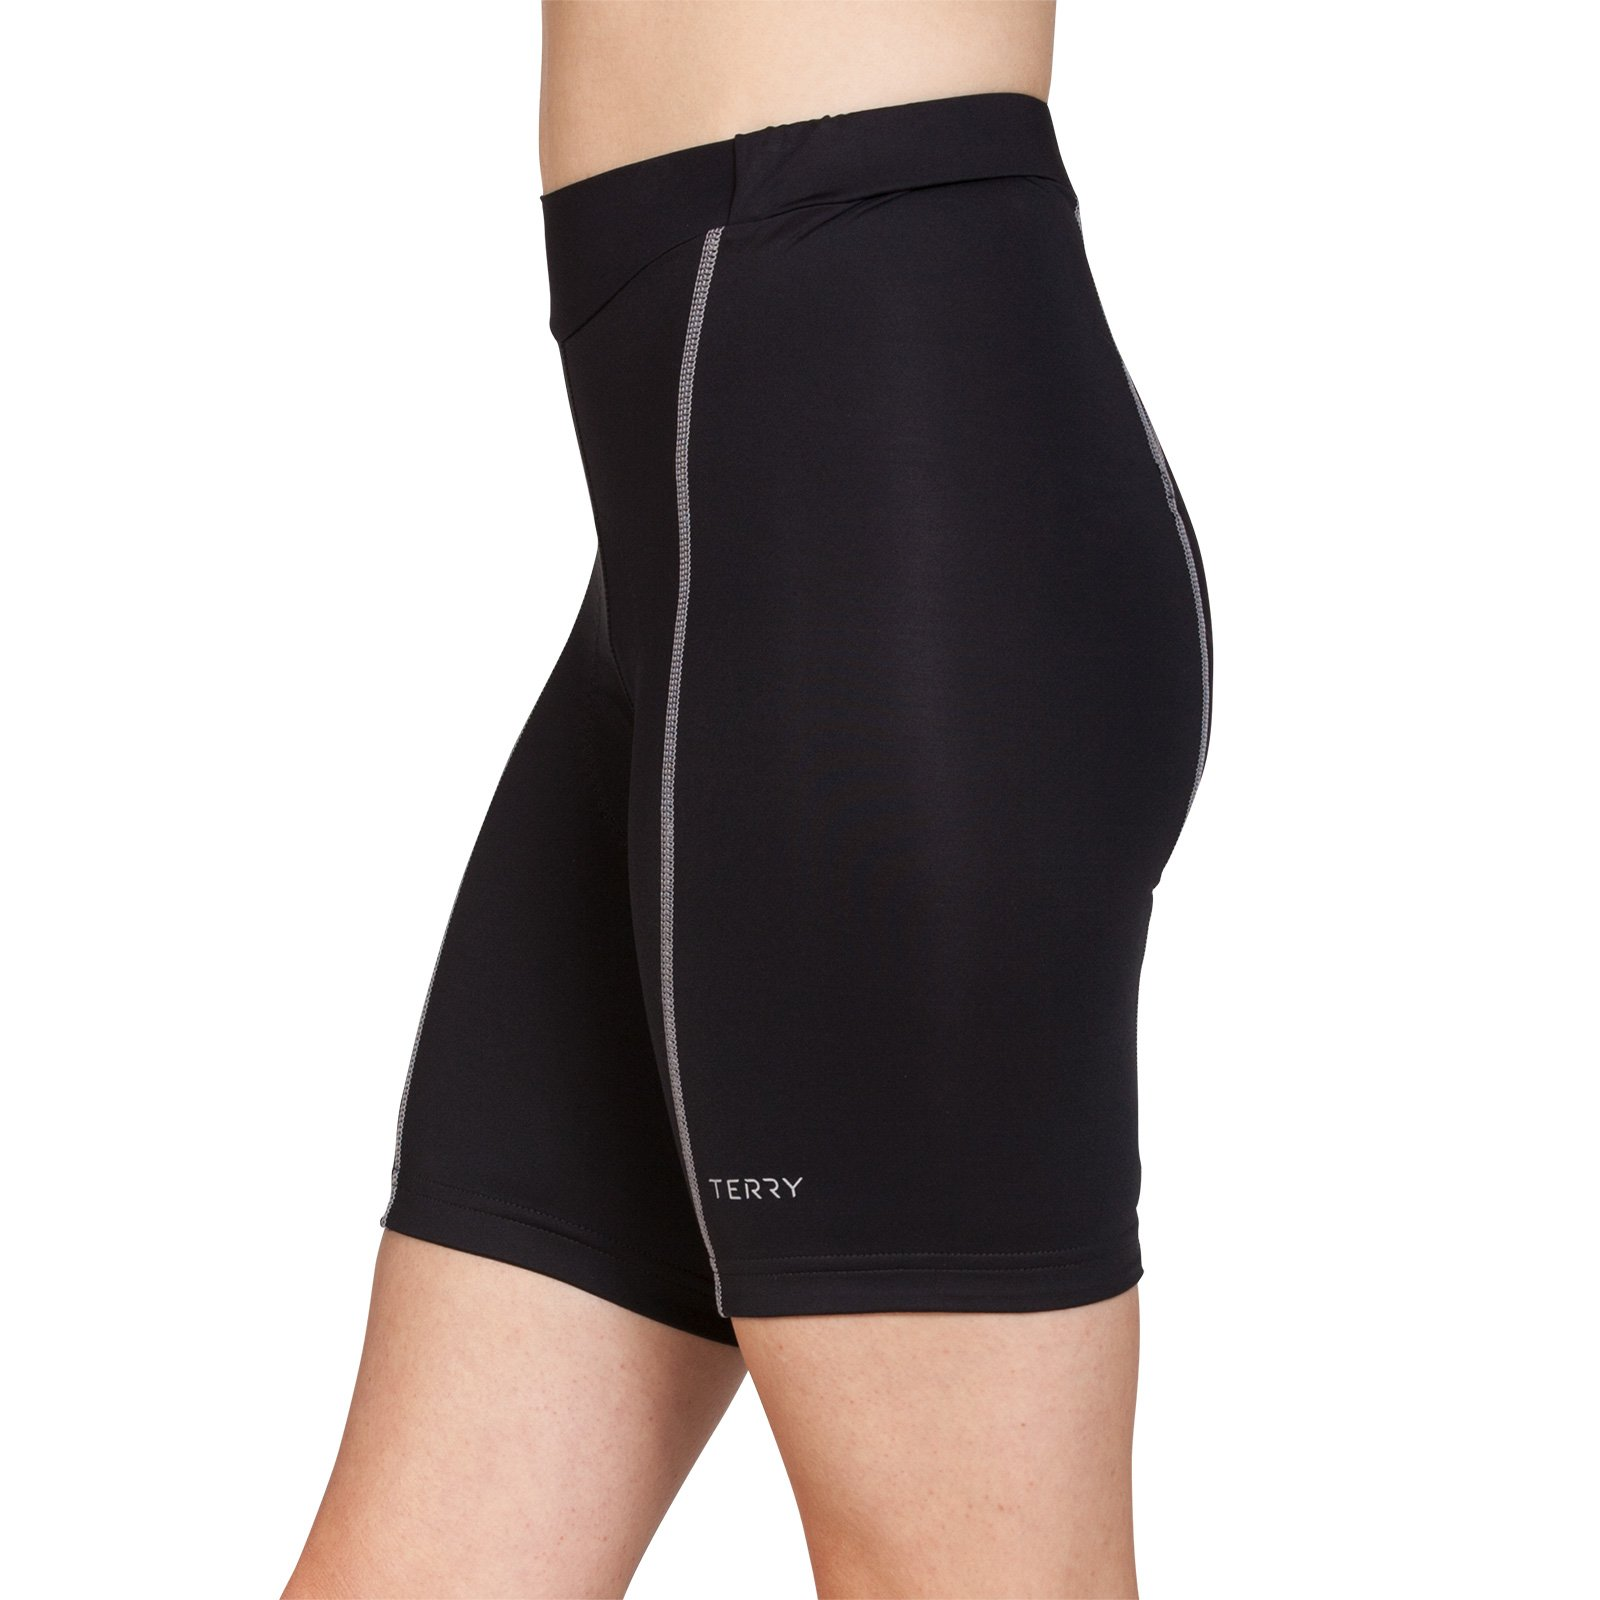 Terry Women's Bella Short - Black/Gray - Medium by Terry (Image #3)